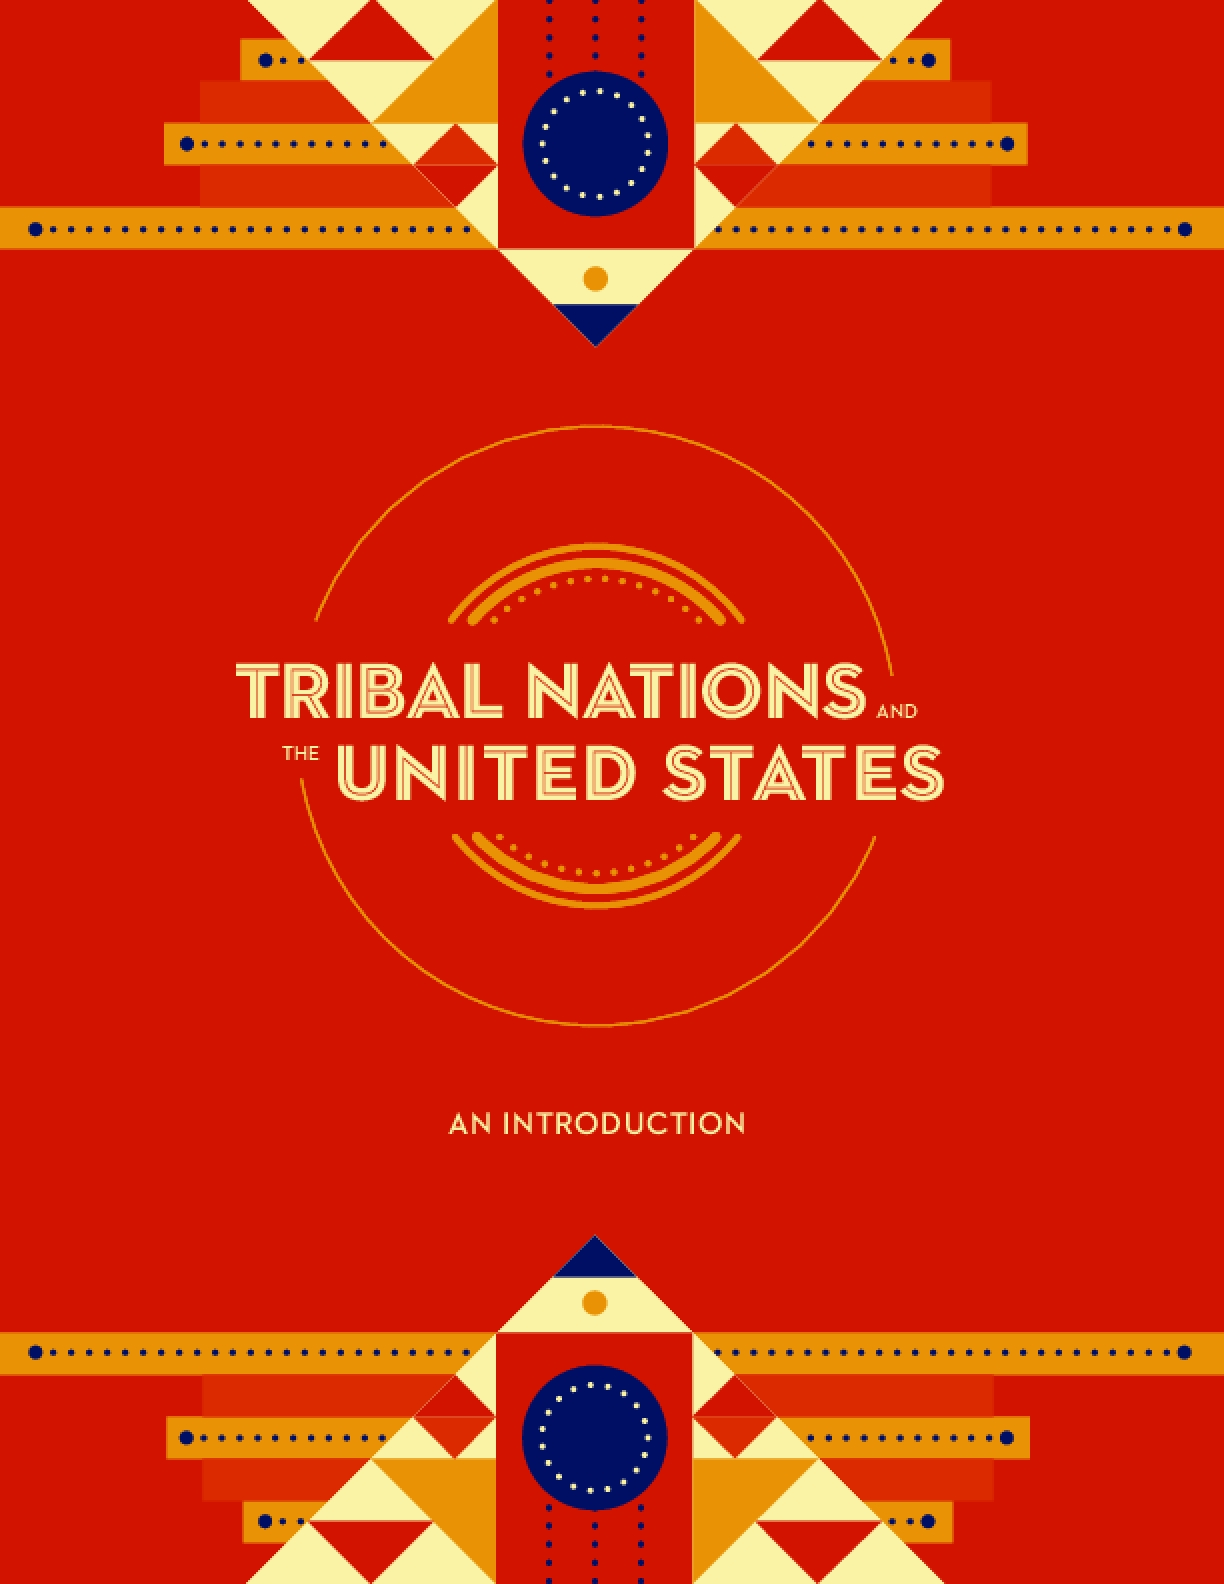 The Tribal Nations and the United States: An Introduction